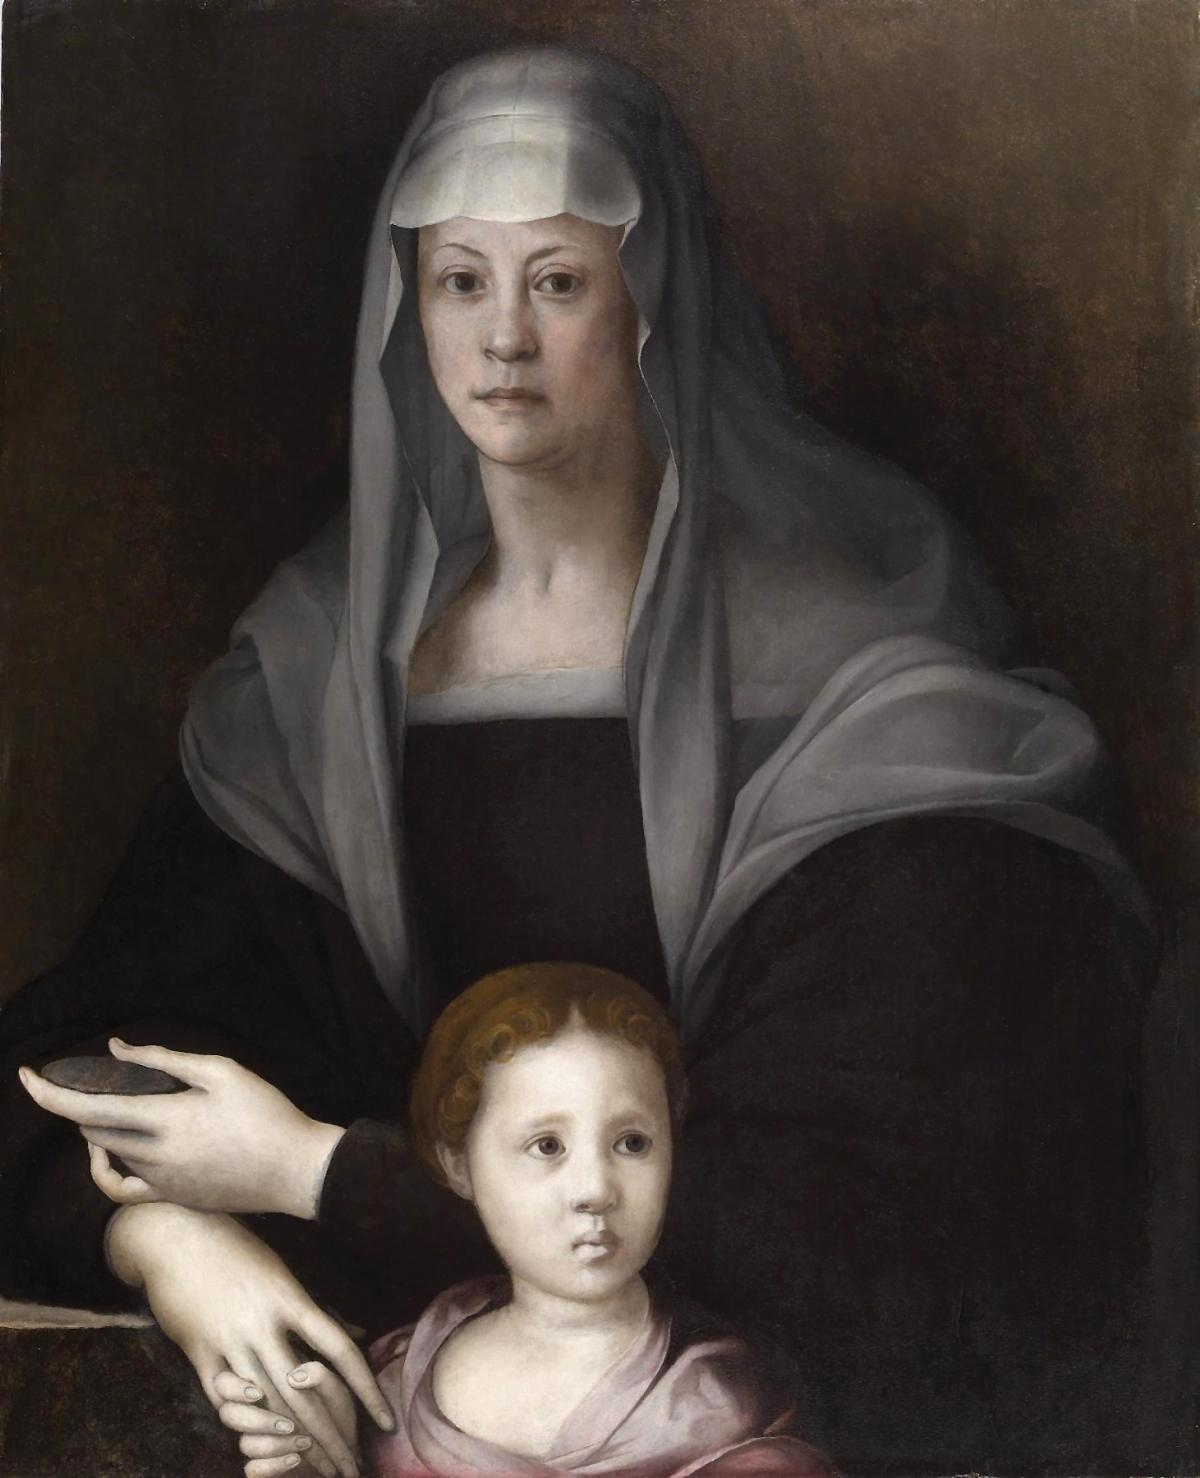 Maria, wearing a grey headdress and dark dress, with Giulia standing in front of her, in a pink dress